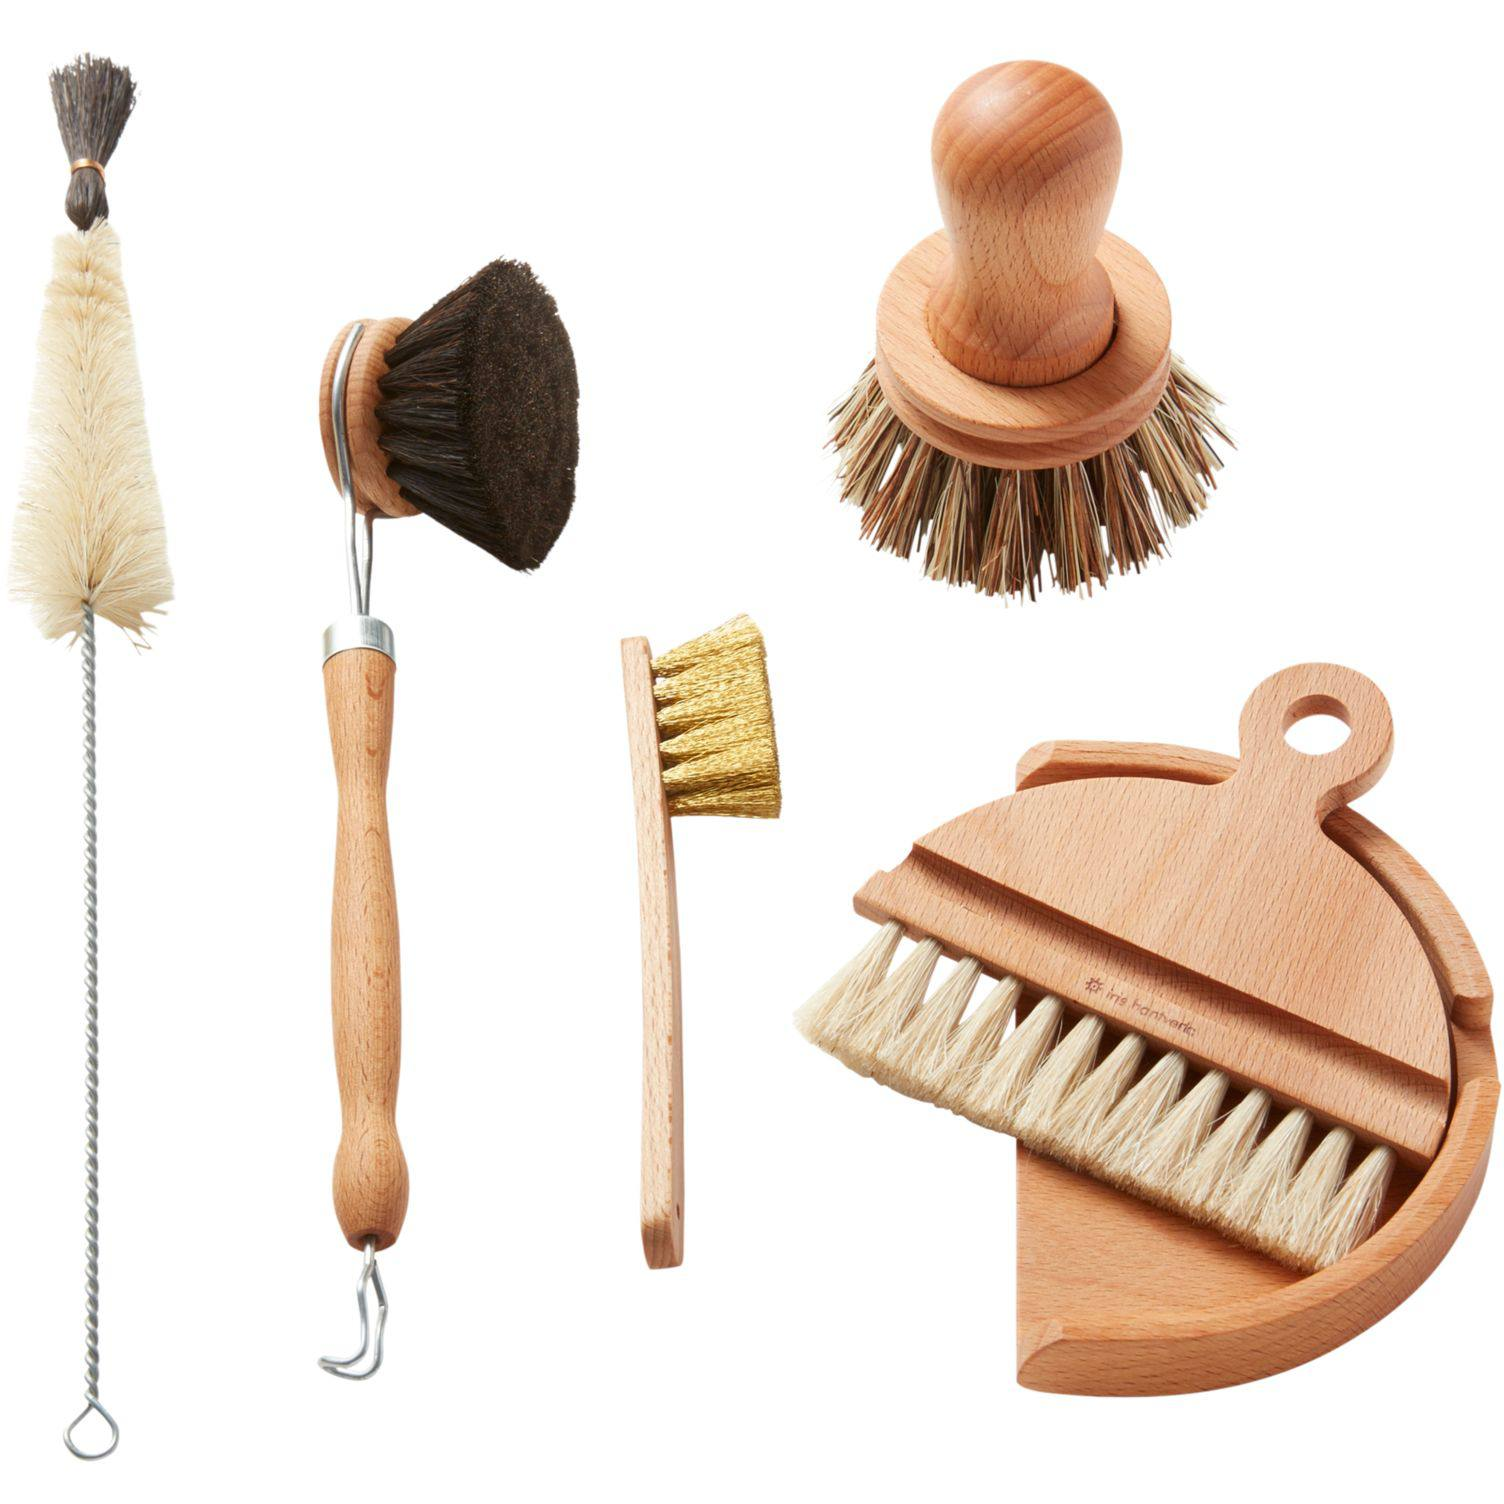 Wood Kitchen Tools